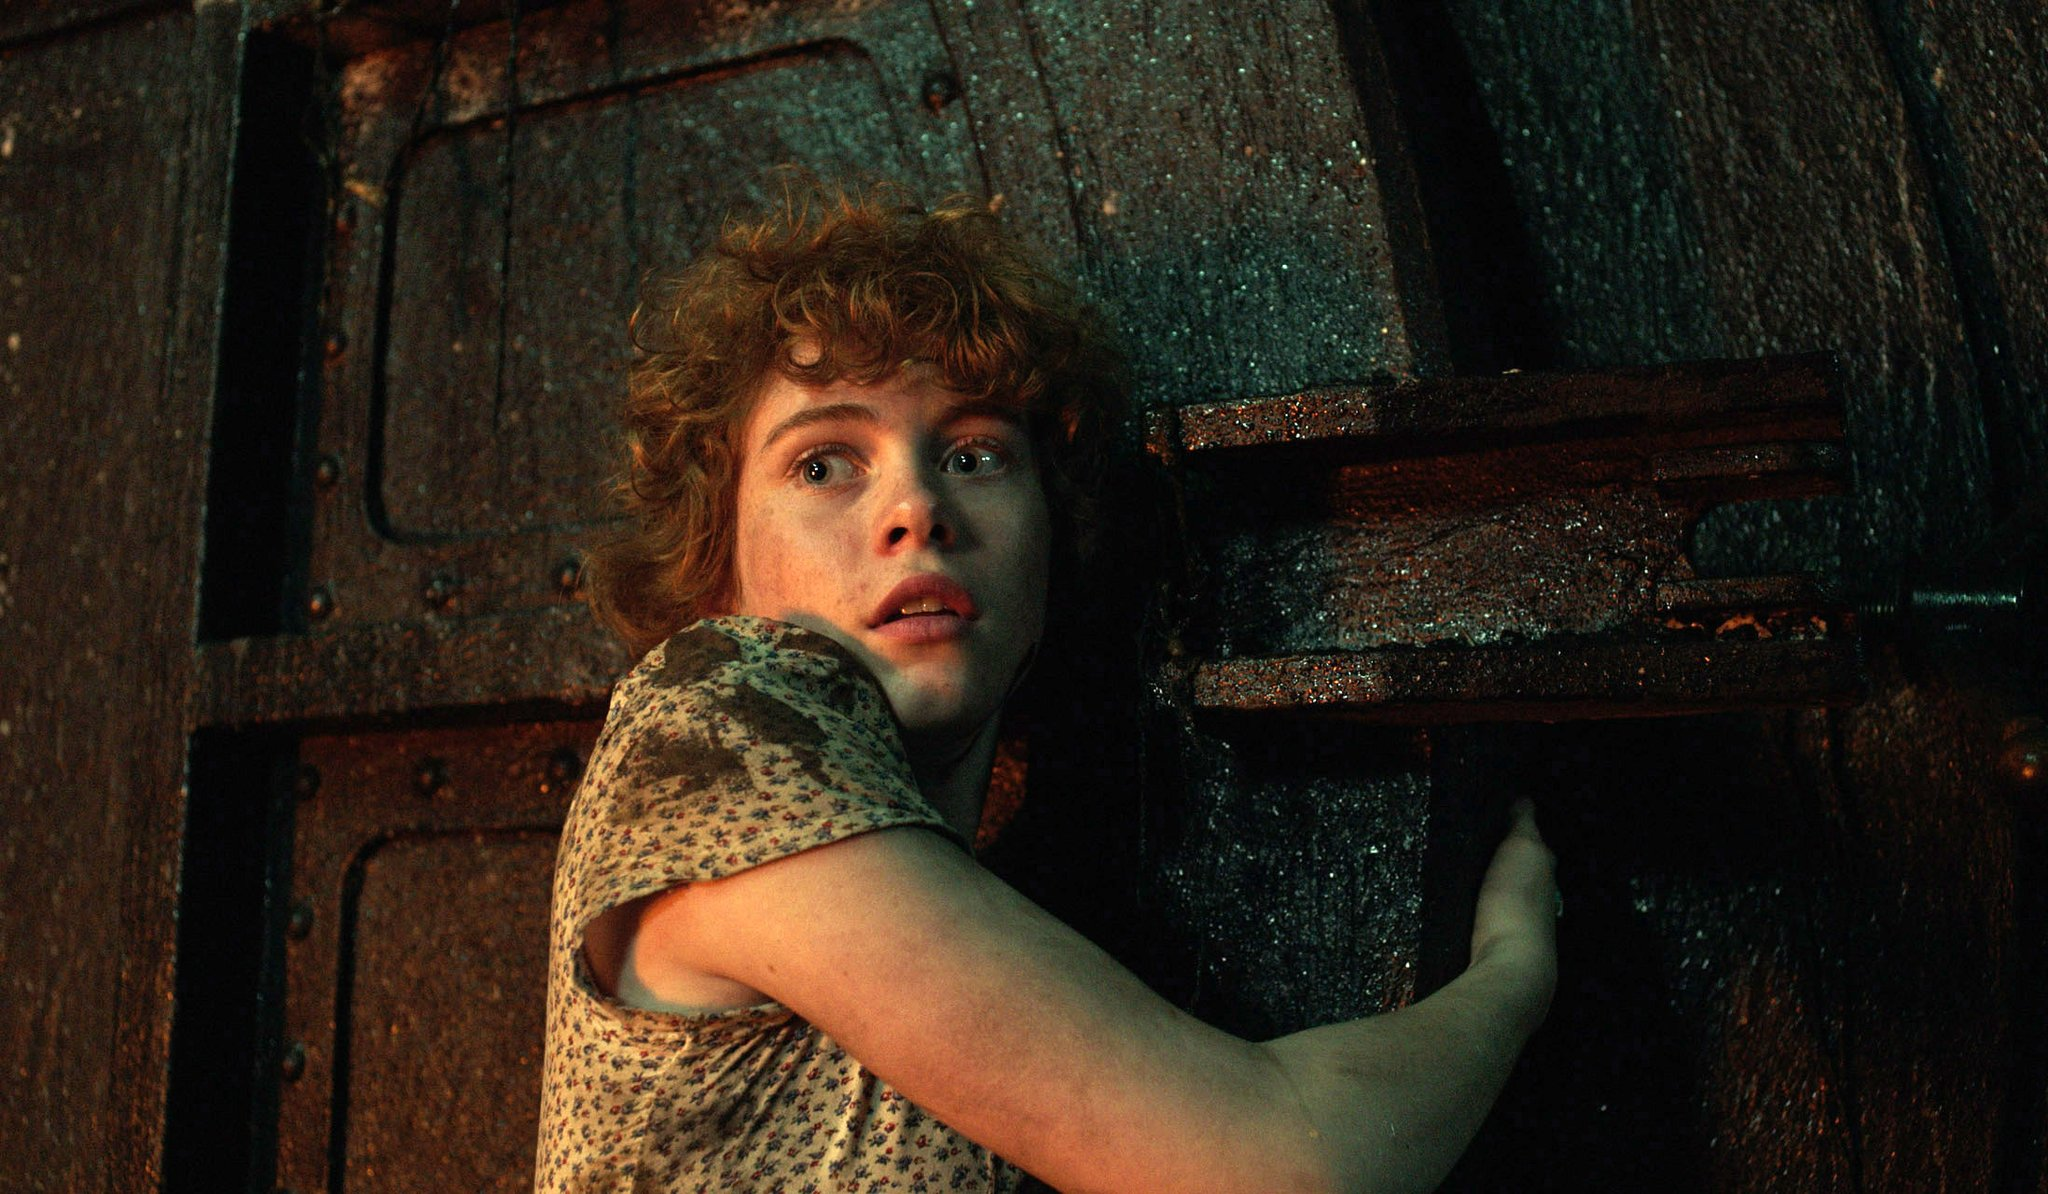 Press still from It that features the character Beverly Marsh.